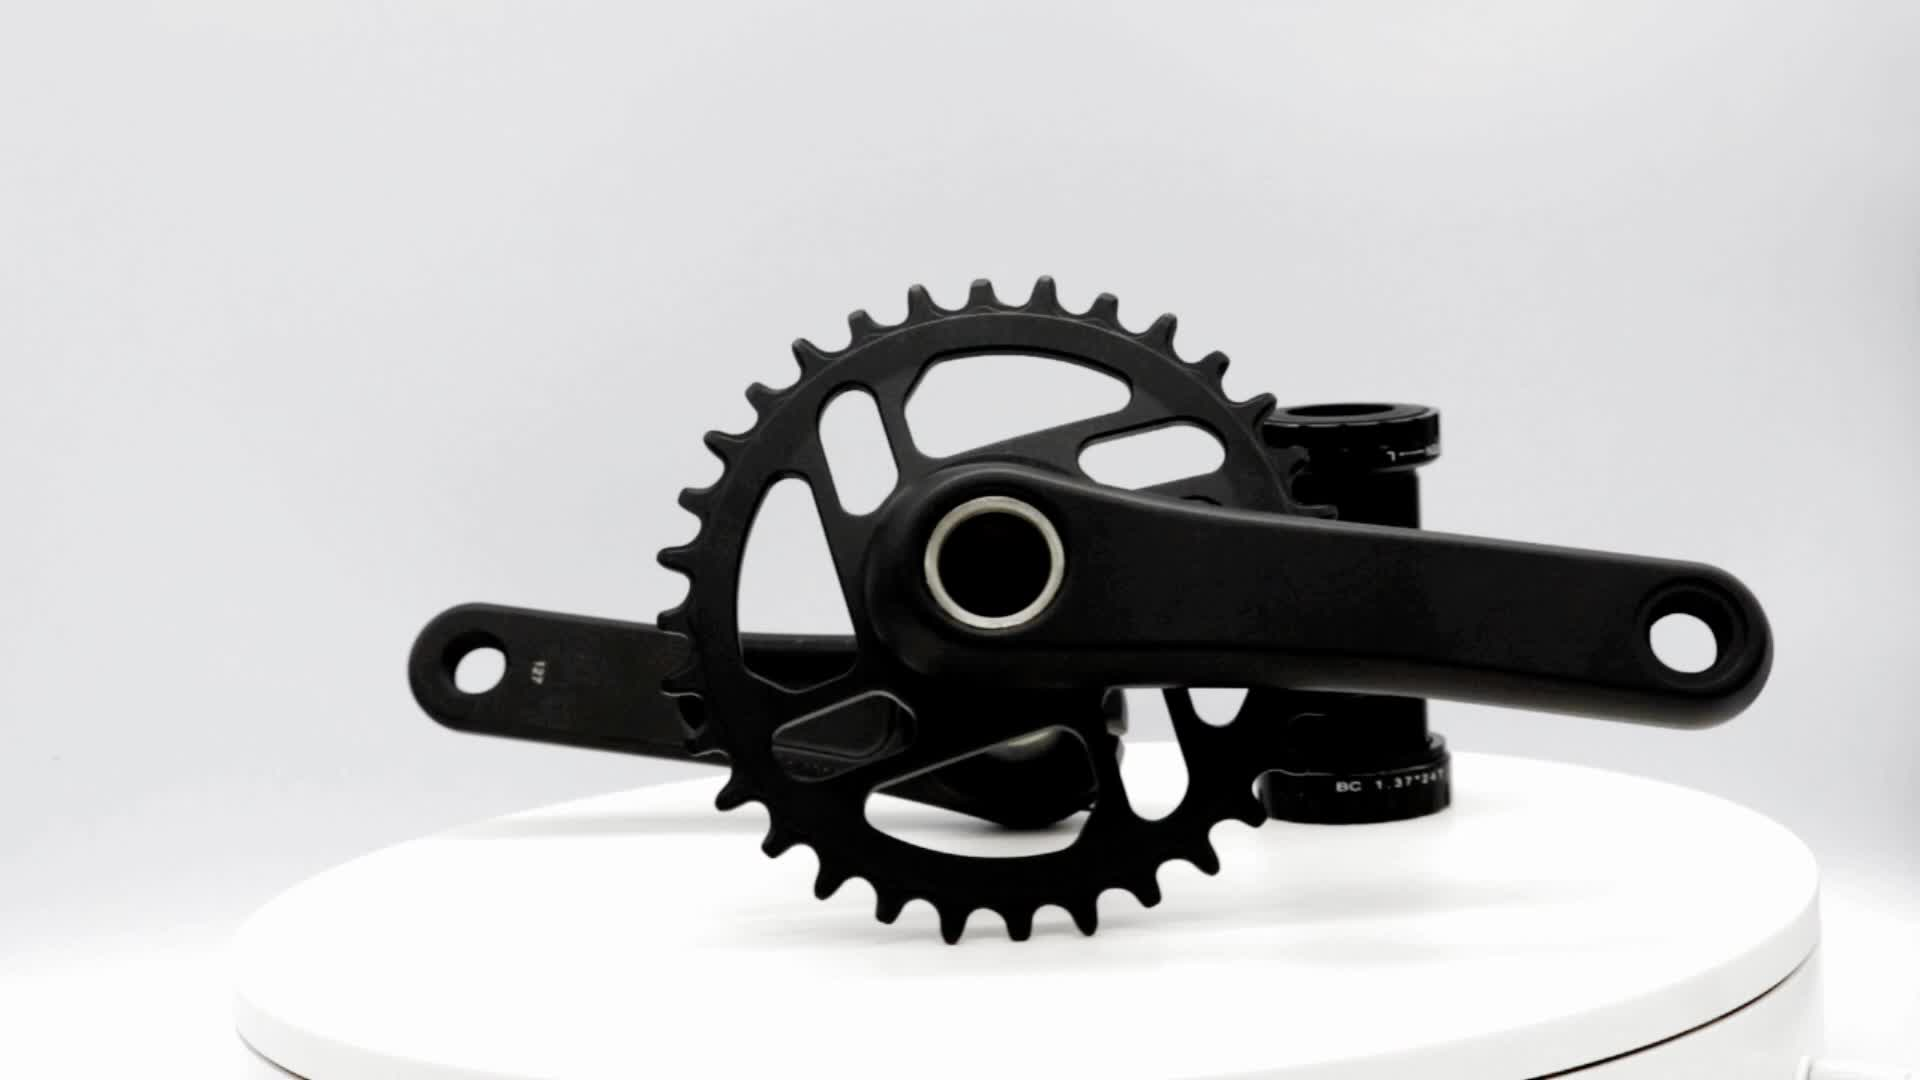 Professional Factory High quality custom direct mount 127mm cnc black alloy kid bike parts electric bicycle crankset price